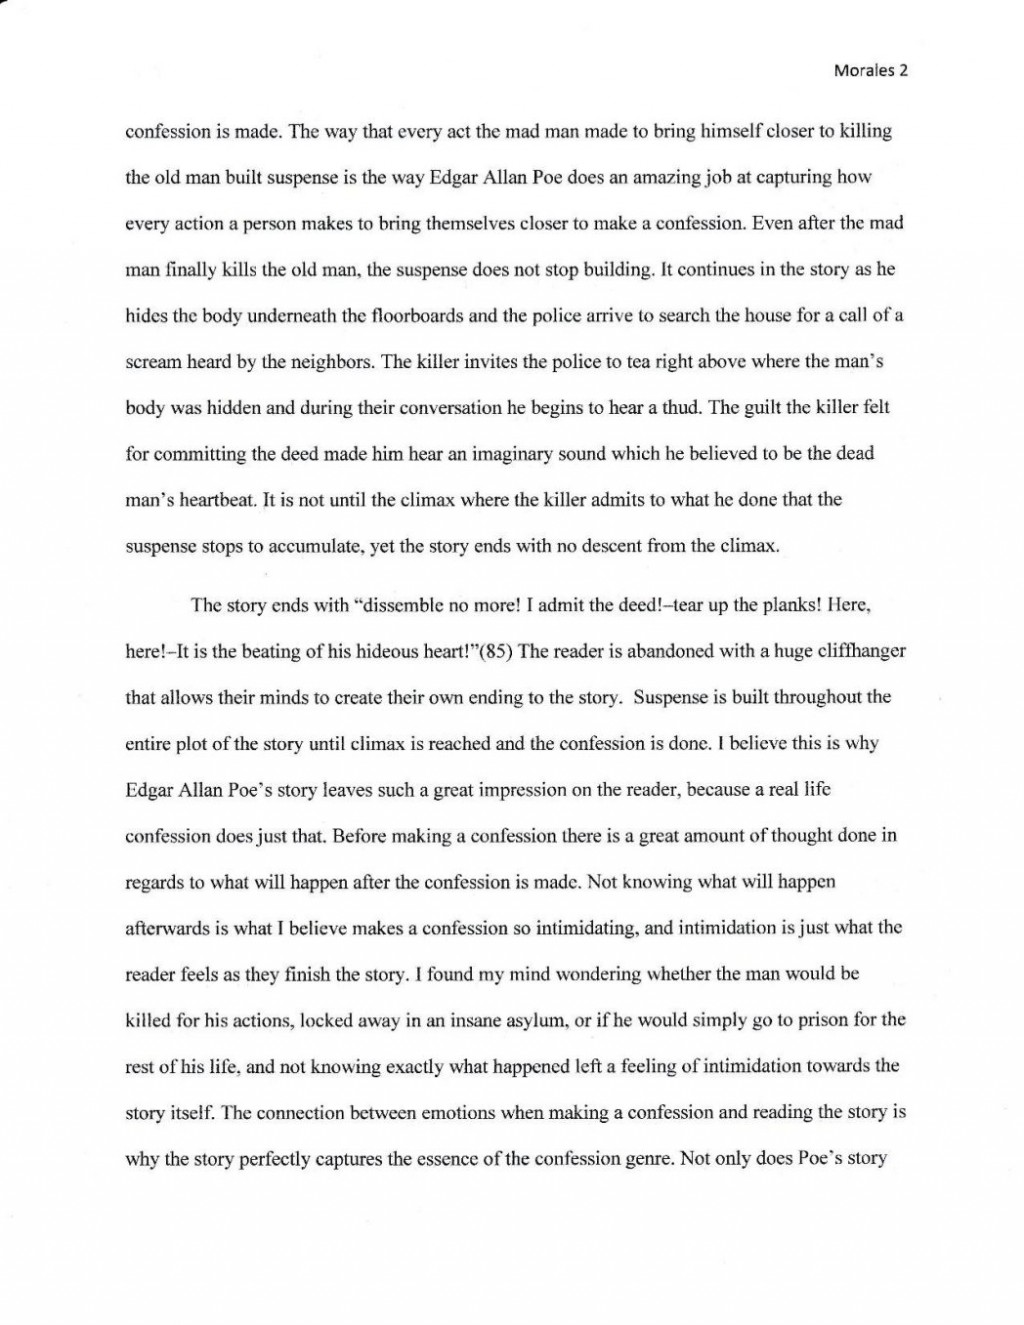 001 Edgar Allen Poe Essay Help Cant Do My Analyzing The Bells An Merged Document 3 Pag On Allan Style Of Writing 1048x1357 Stirring Raven Topics Titles Explanation Large